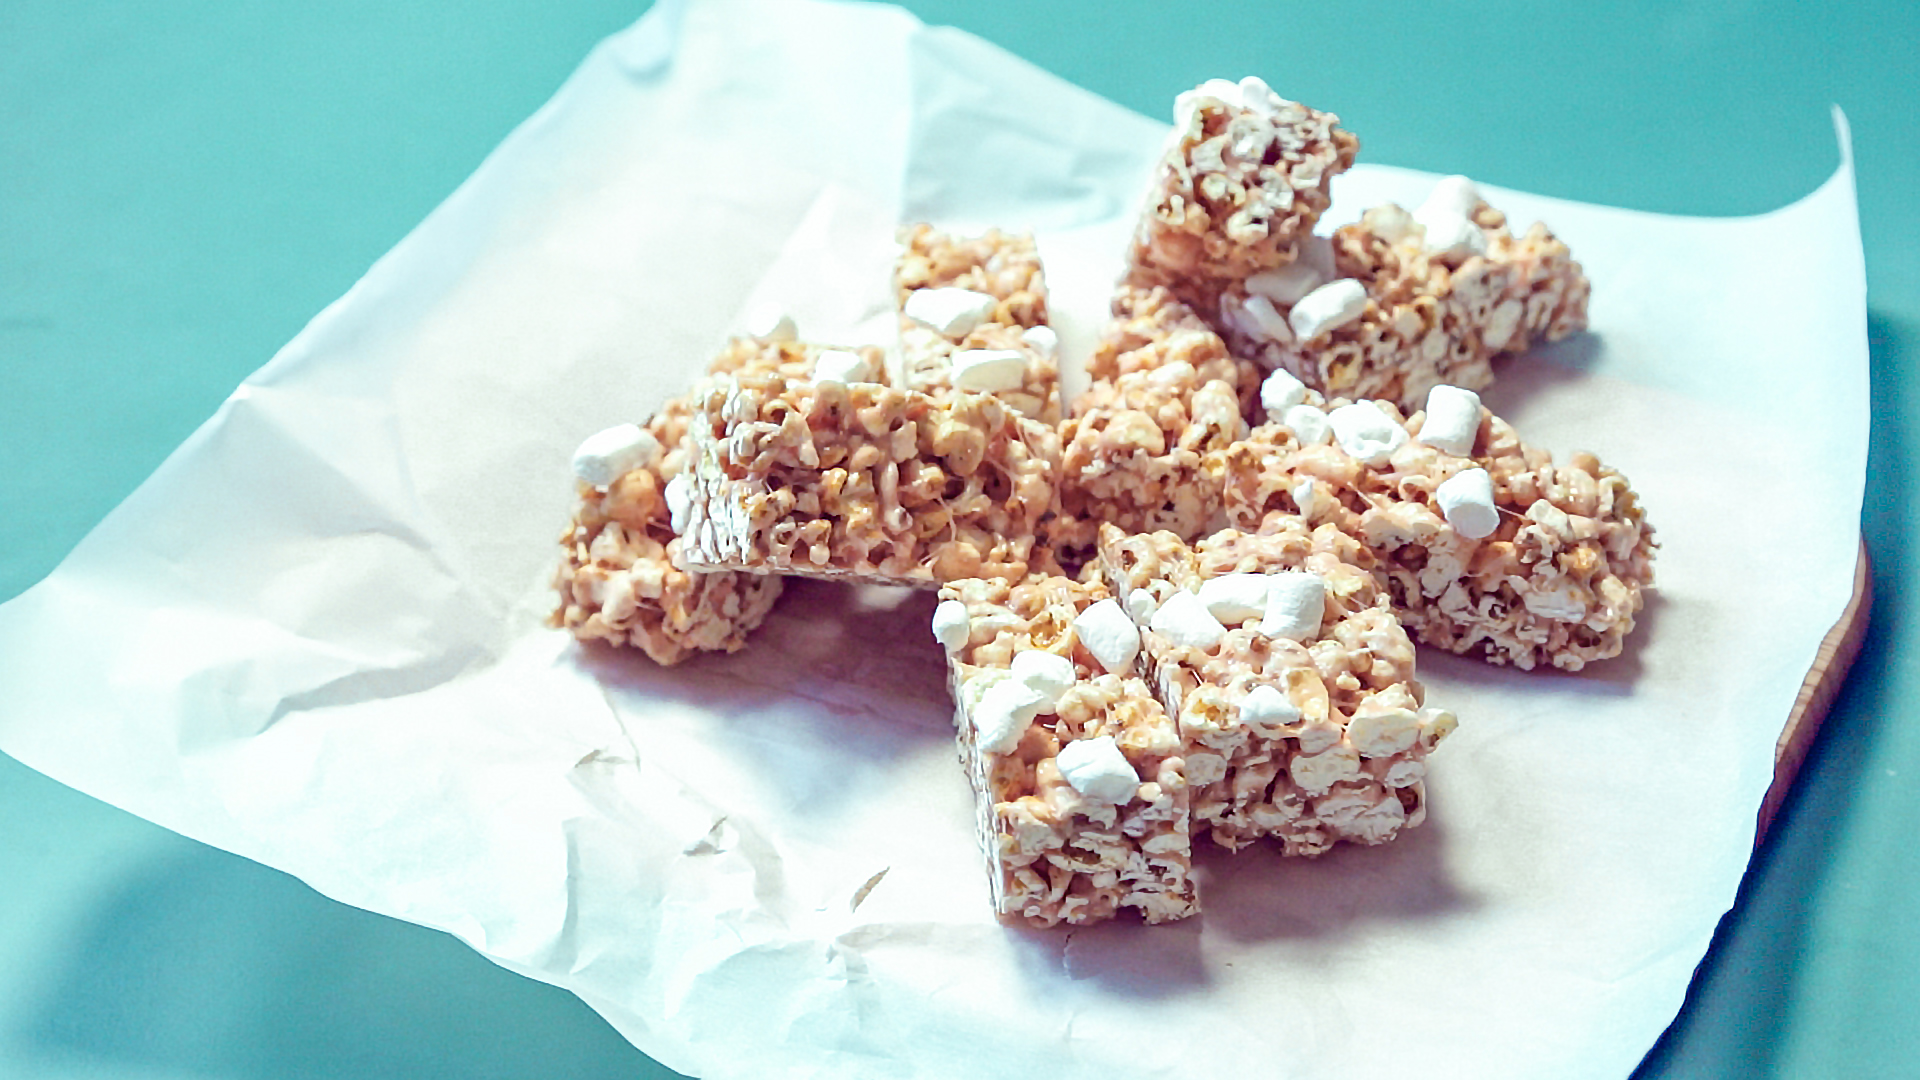 Gousto's Propercorn Marshmallow Melts Recipe